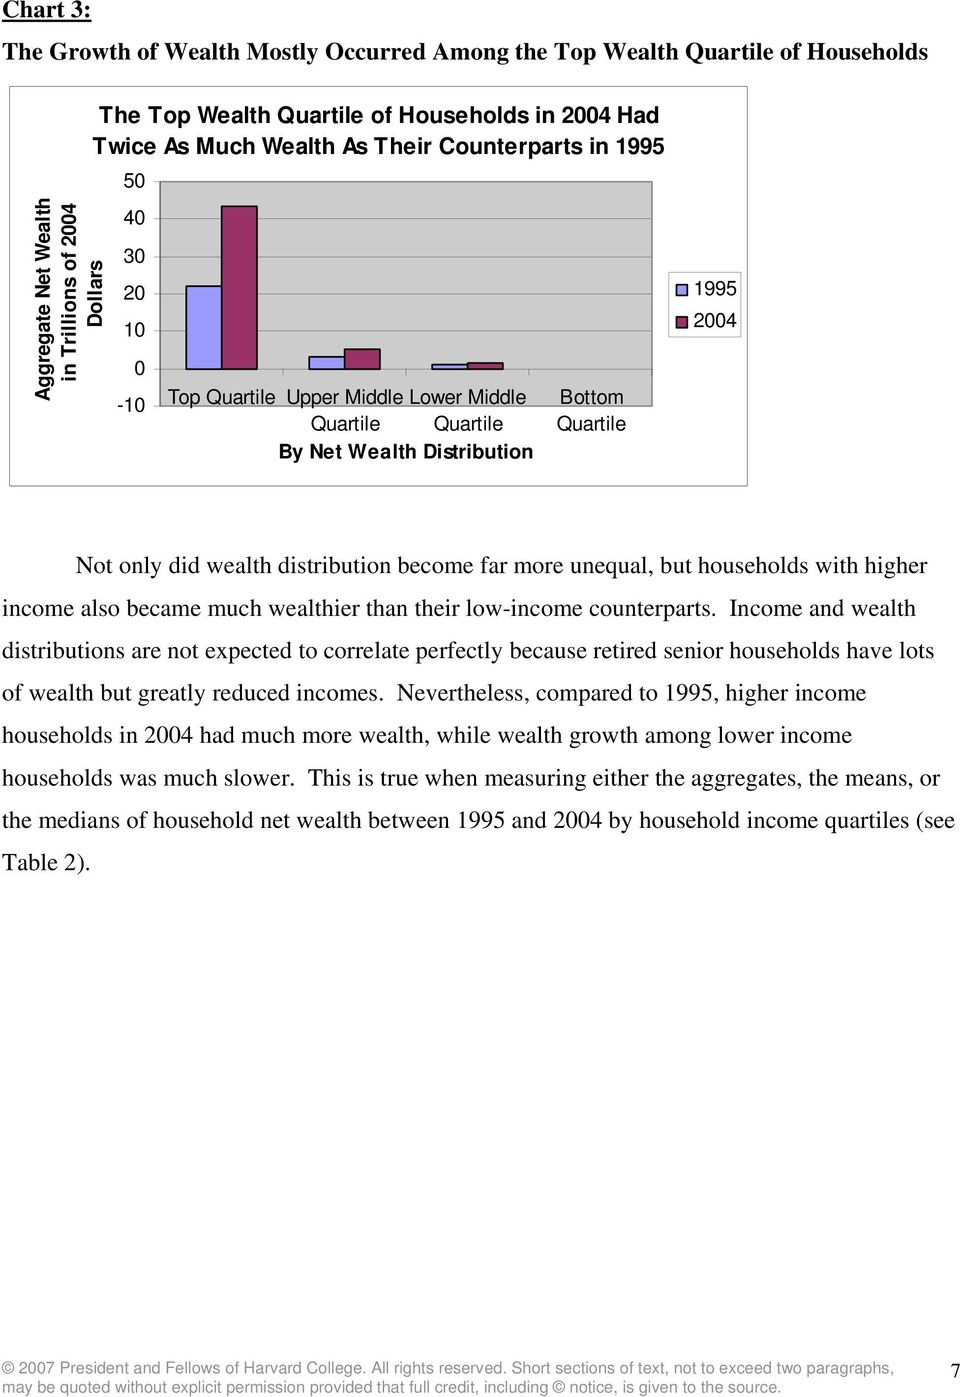 higher income also became much wealthier than their low-income counterparts.